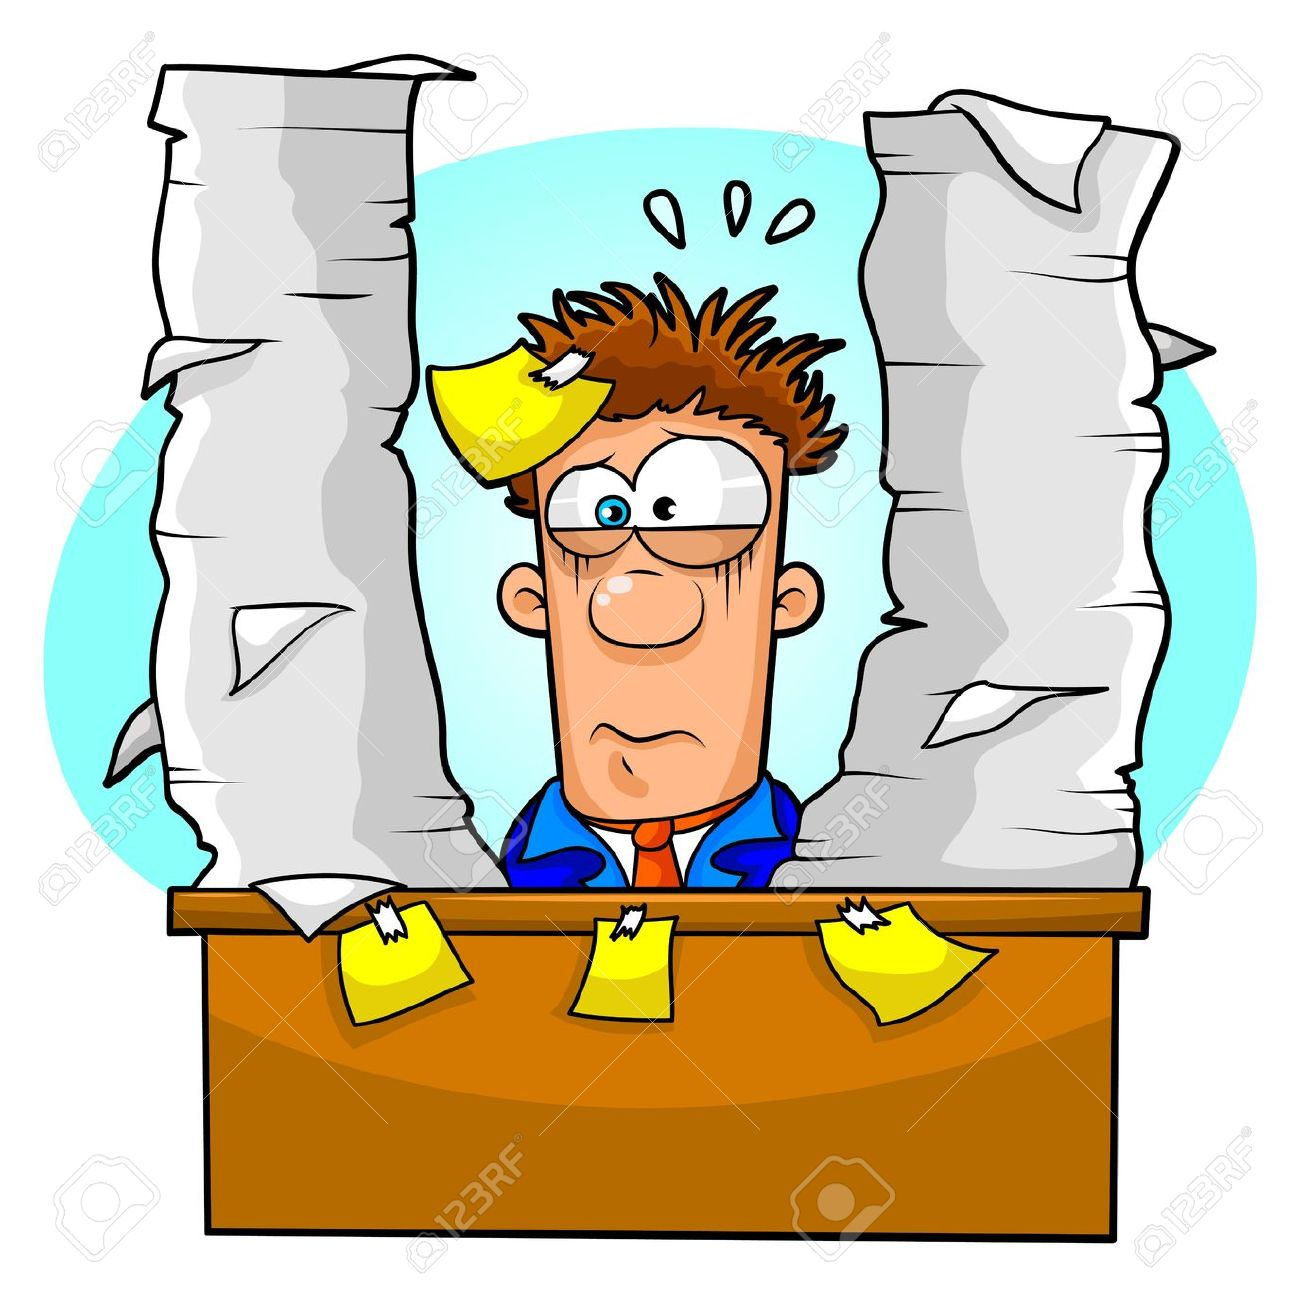 Images of stressed out. Stress clipart tired